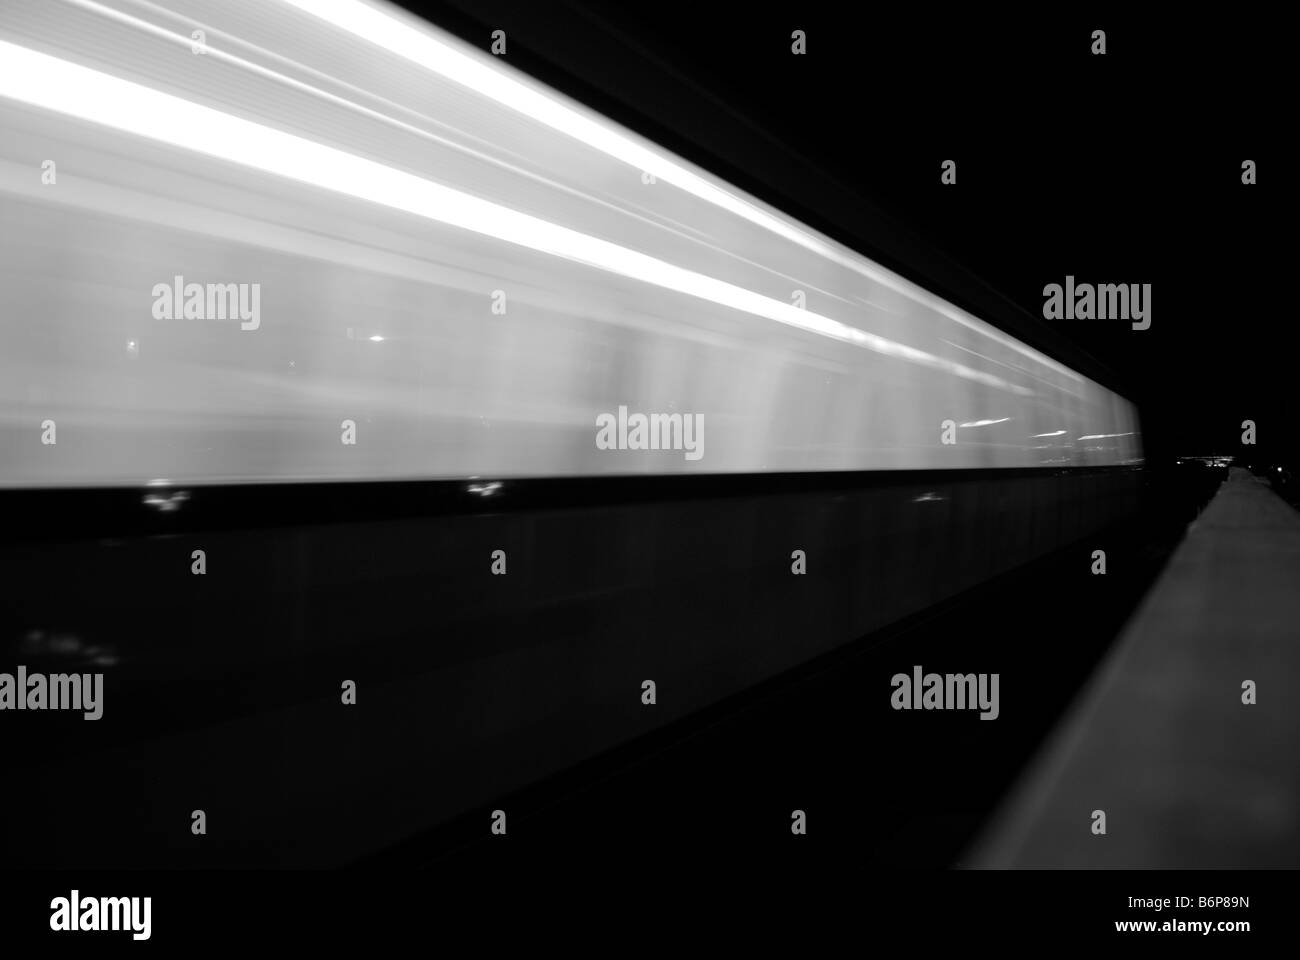 NIGHT TRAIN - Stock Image